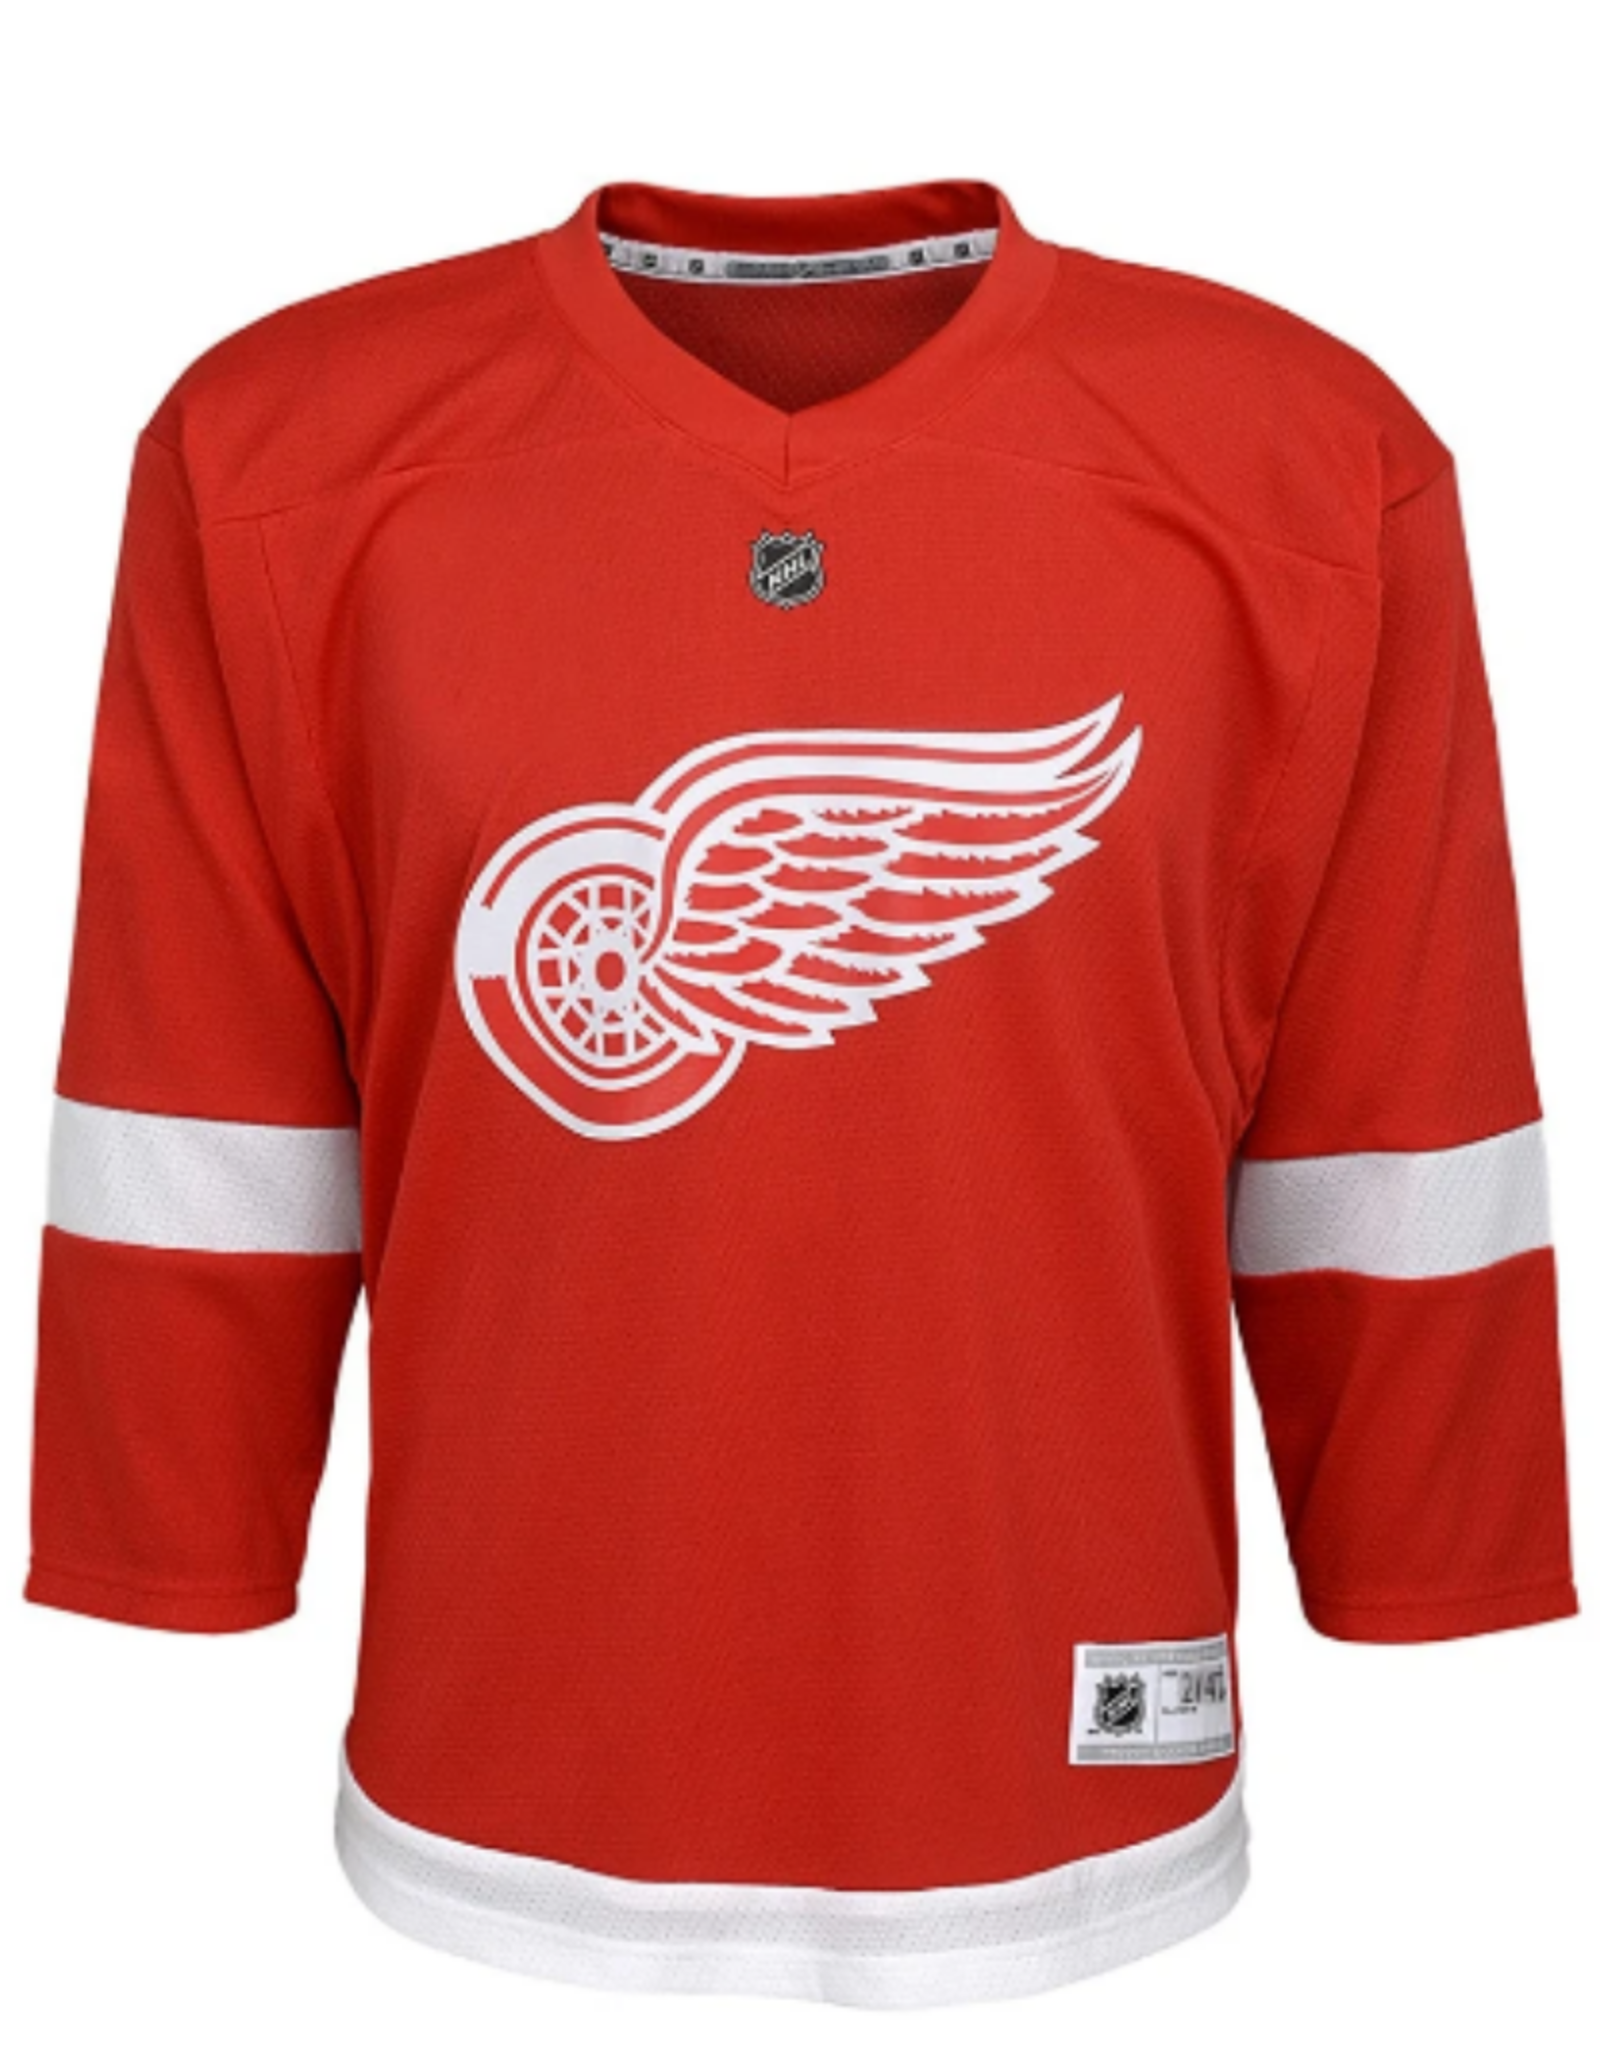 NHL Toddler Replica Jersey Detroit Red Wings 2-4T